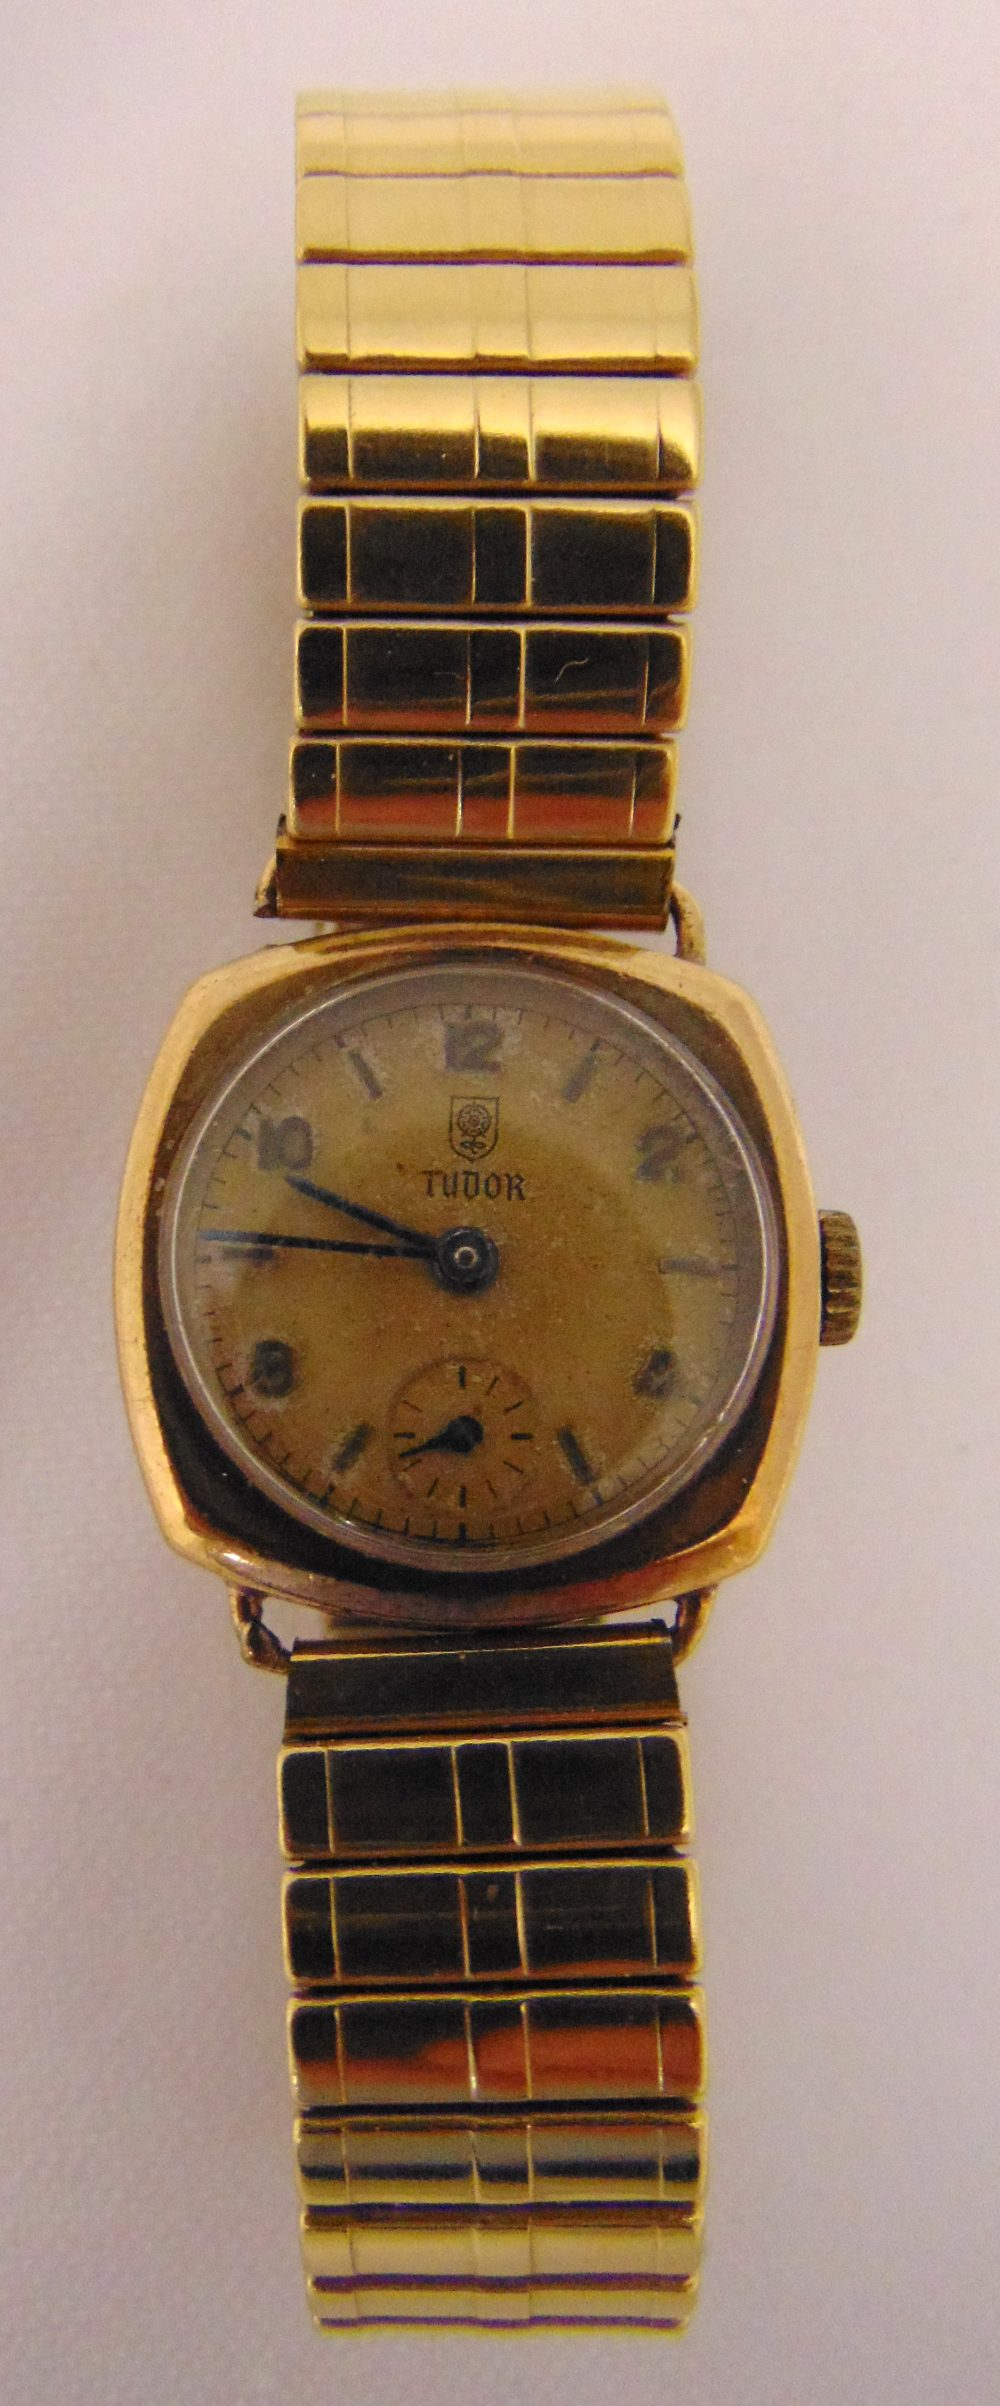 Tudor 9ct gold ladies wristwatch on a gold plated expanding bracelet